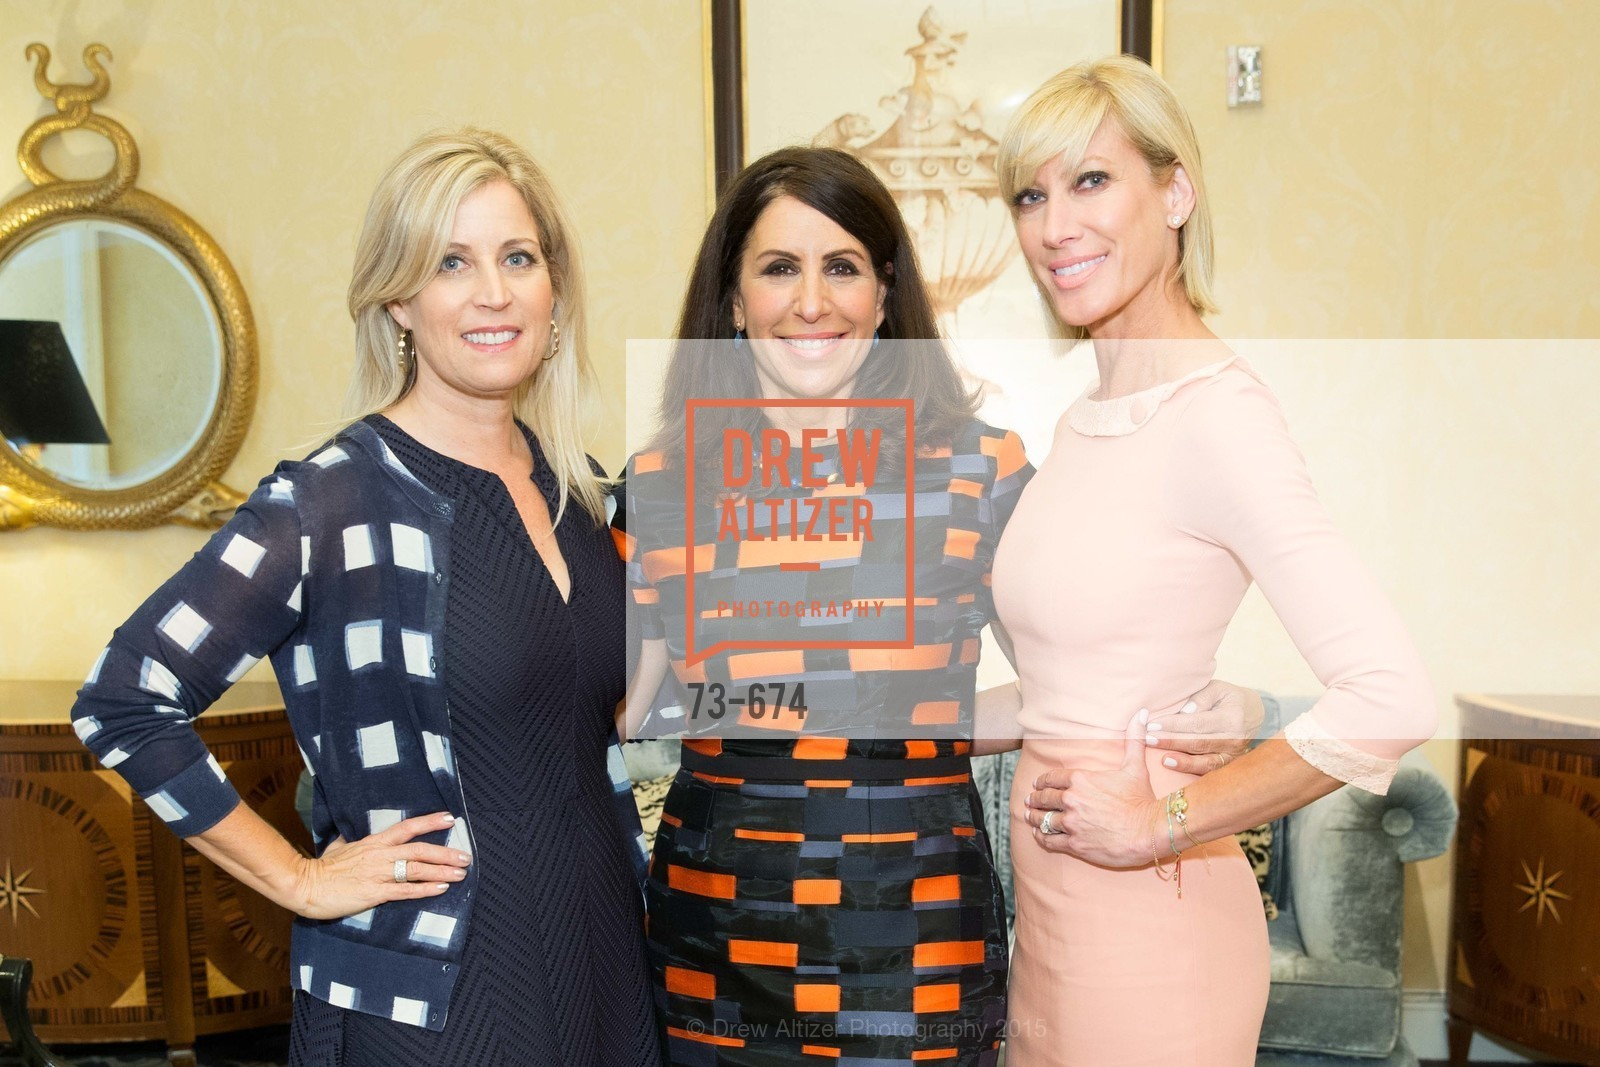 Jane Inch, Lisa Grotts, Janet Reilly, Junior League of San Francisco's WATCH Luncheon, Fairmont Hotel. 950 Mason Street, May 4th, 2015,Drew Altizer, Drew Altizer Photography, full-service agency, private events, San Francisco photographer, photographer california